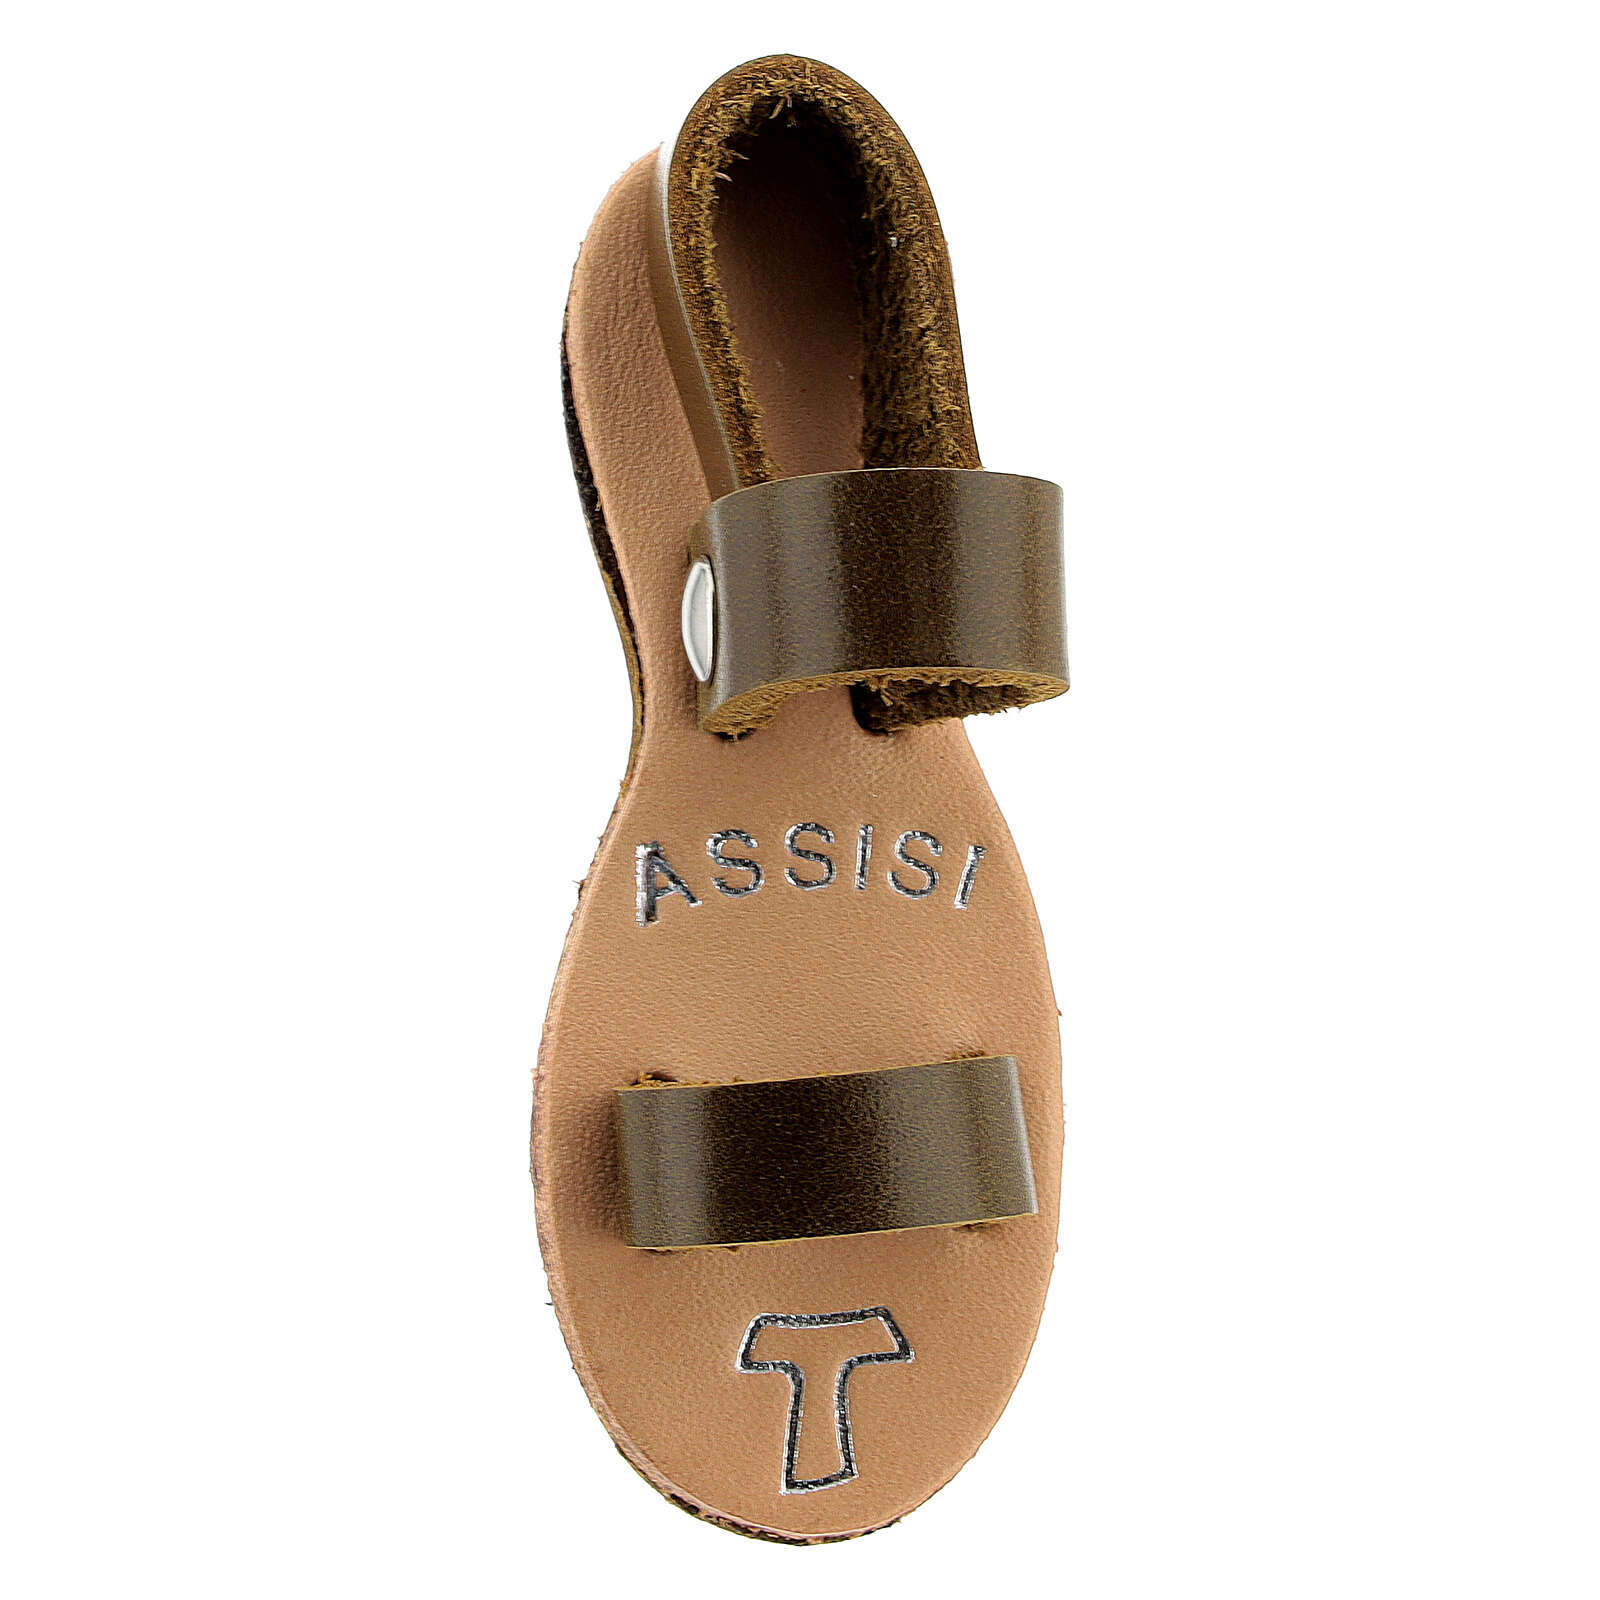 Franciscan sandal magnet Assisi real leather 3